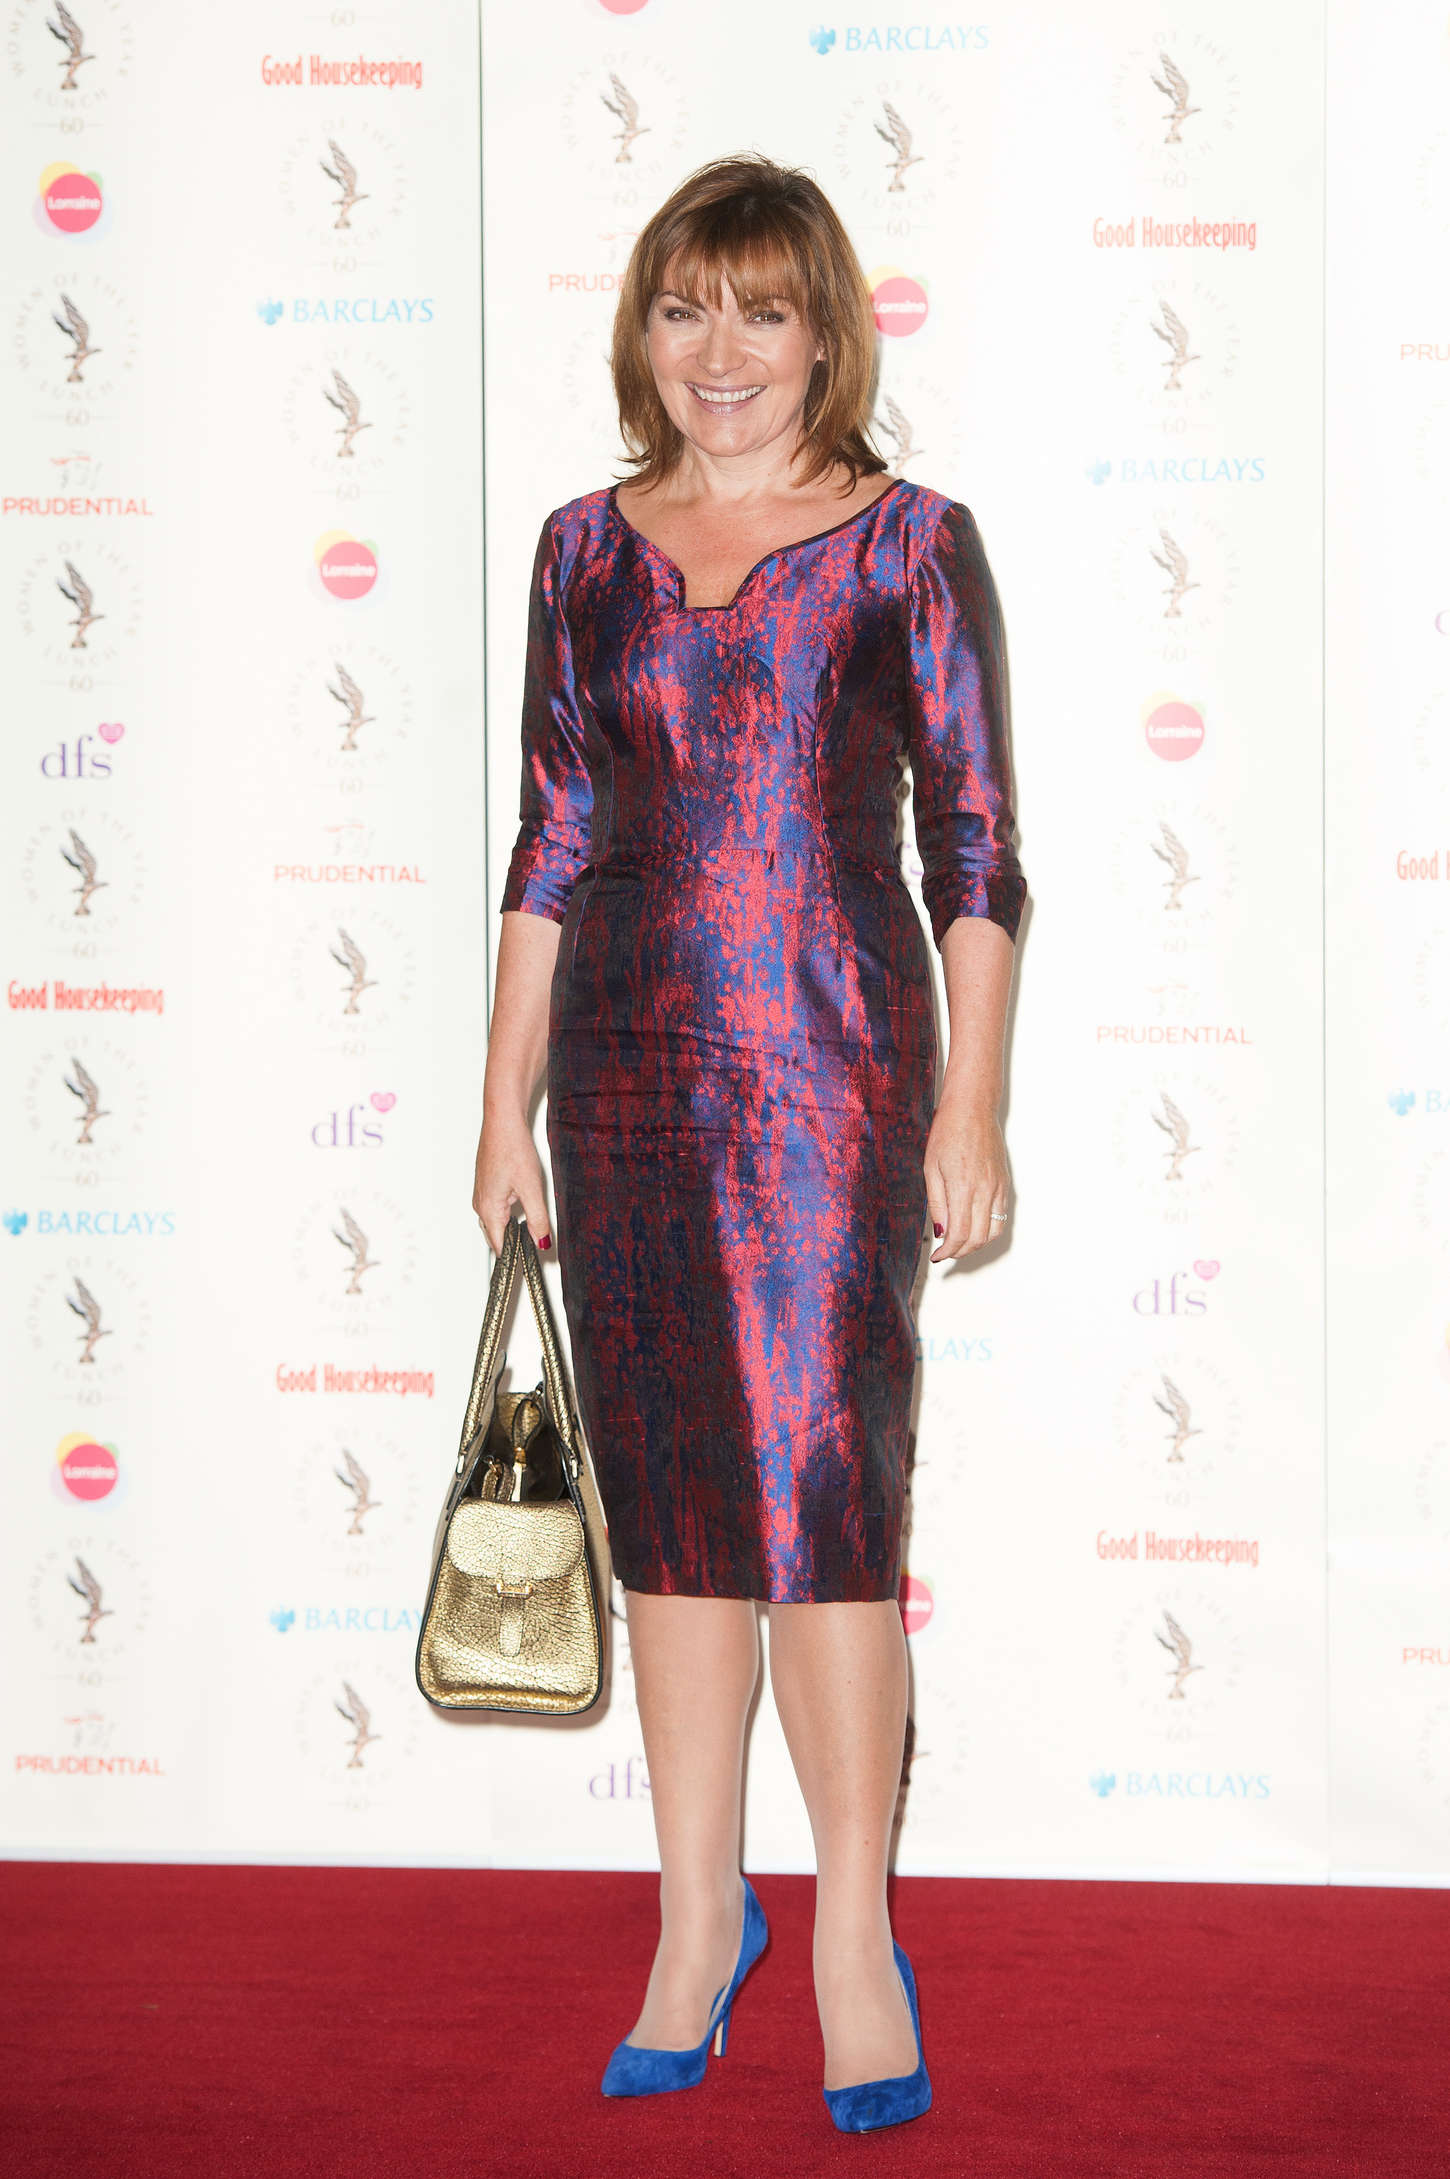 Lorraine Kelly at Women Of The Year Awards in London